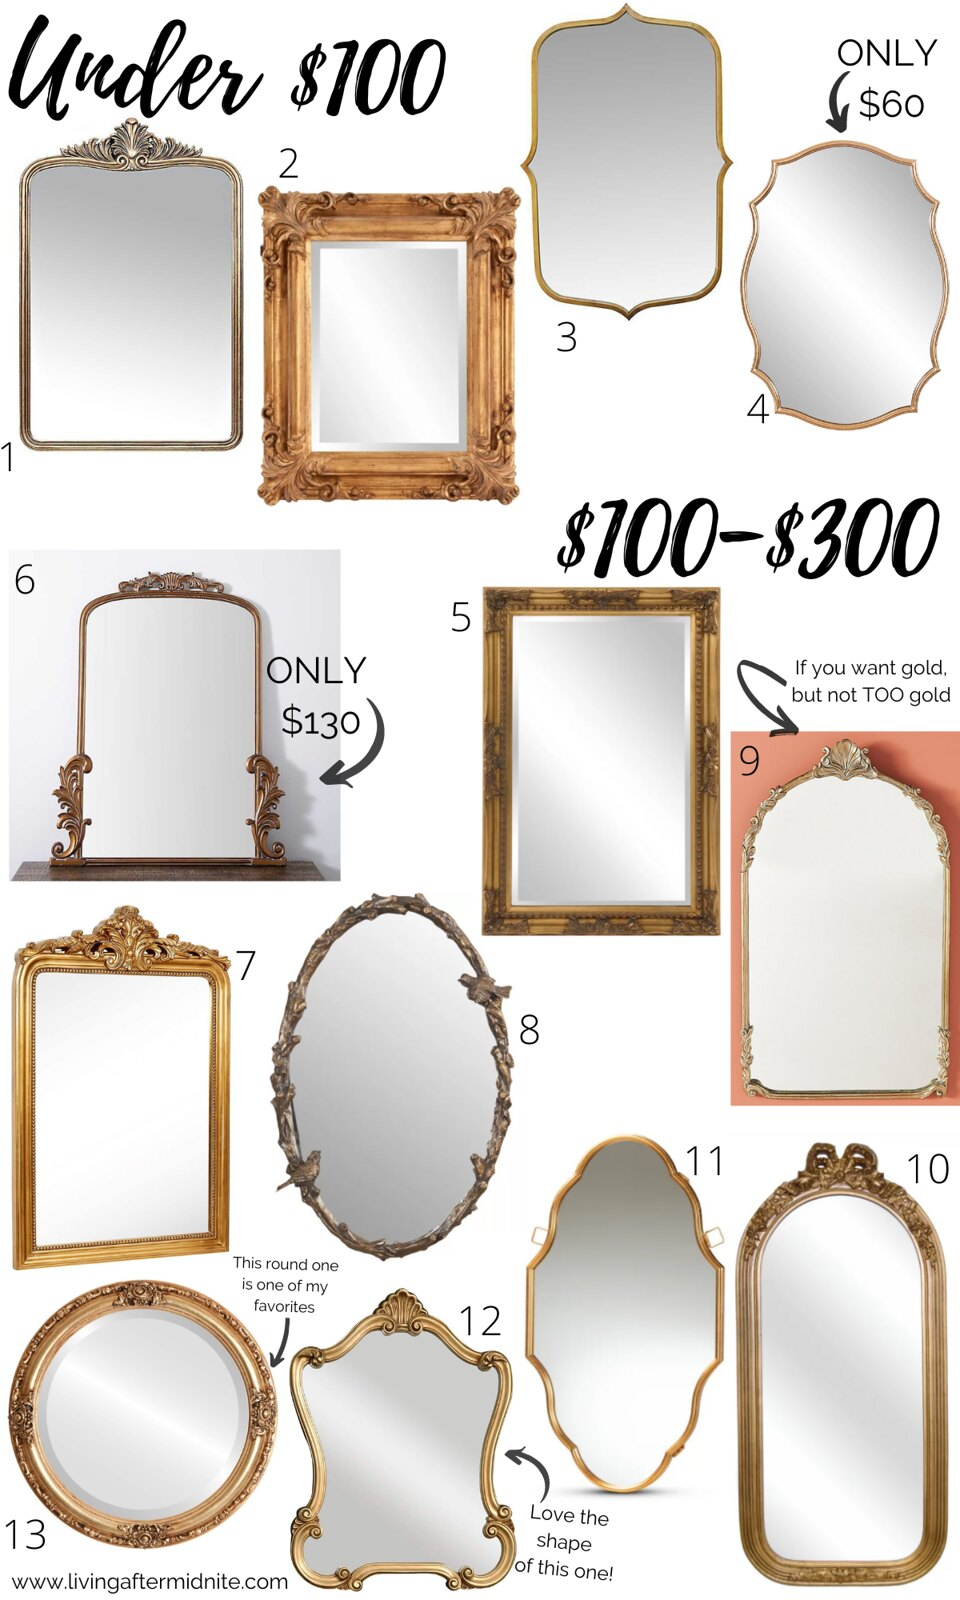 Currently Obsessed with Vintage Gold Mirrors | Affordable Antique Looking Mirrors from $100 to $300